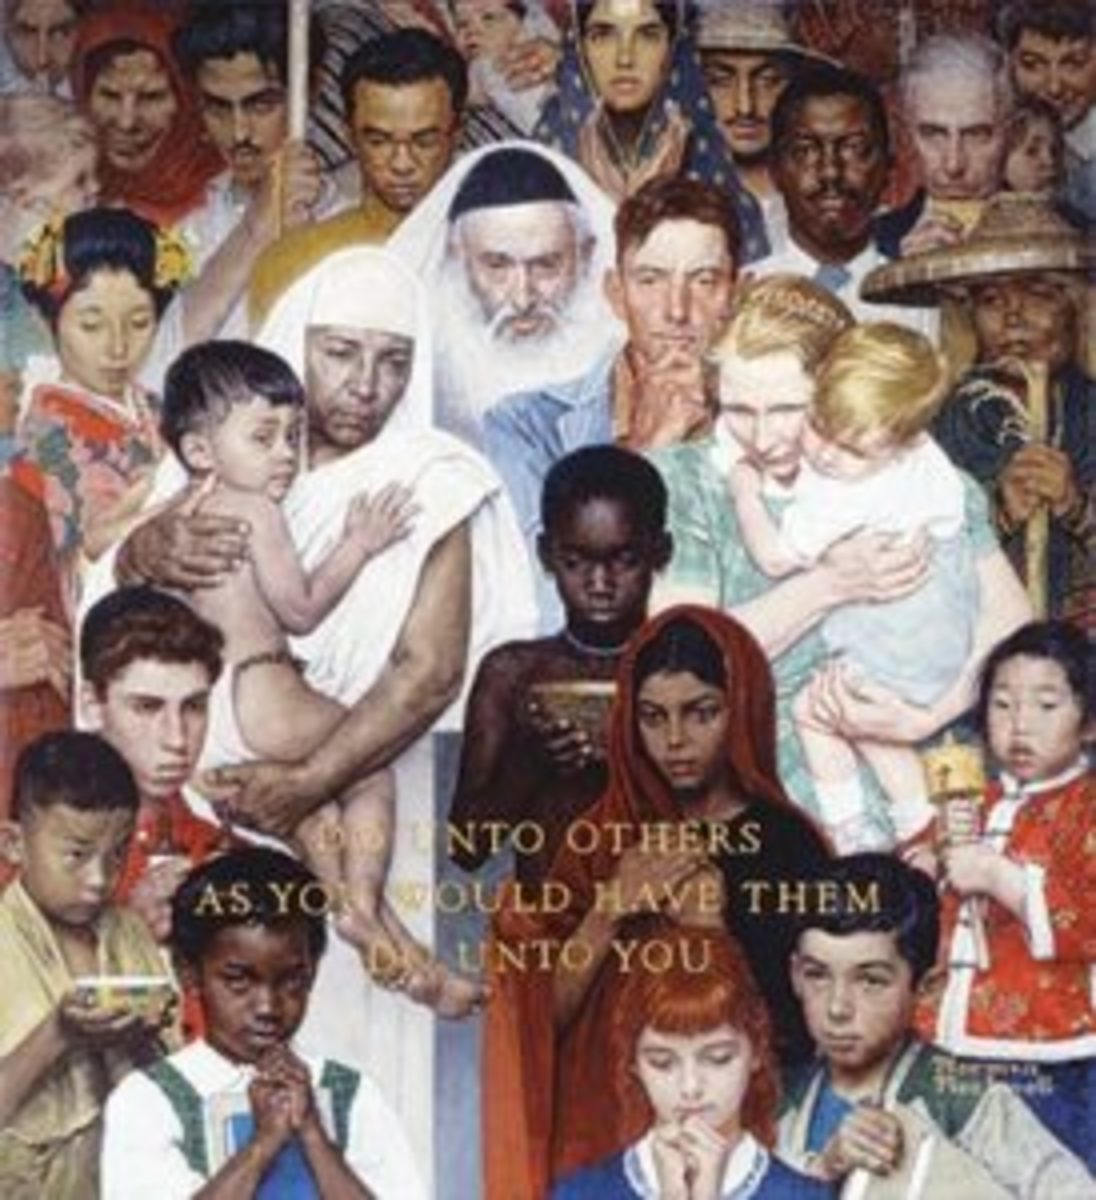 Norman Rockwell painted THE GOLDEN RULE for The Saturday Evening Post in 1961. Image courtesy Norman Rockwell Museum